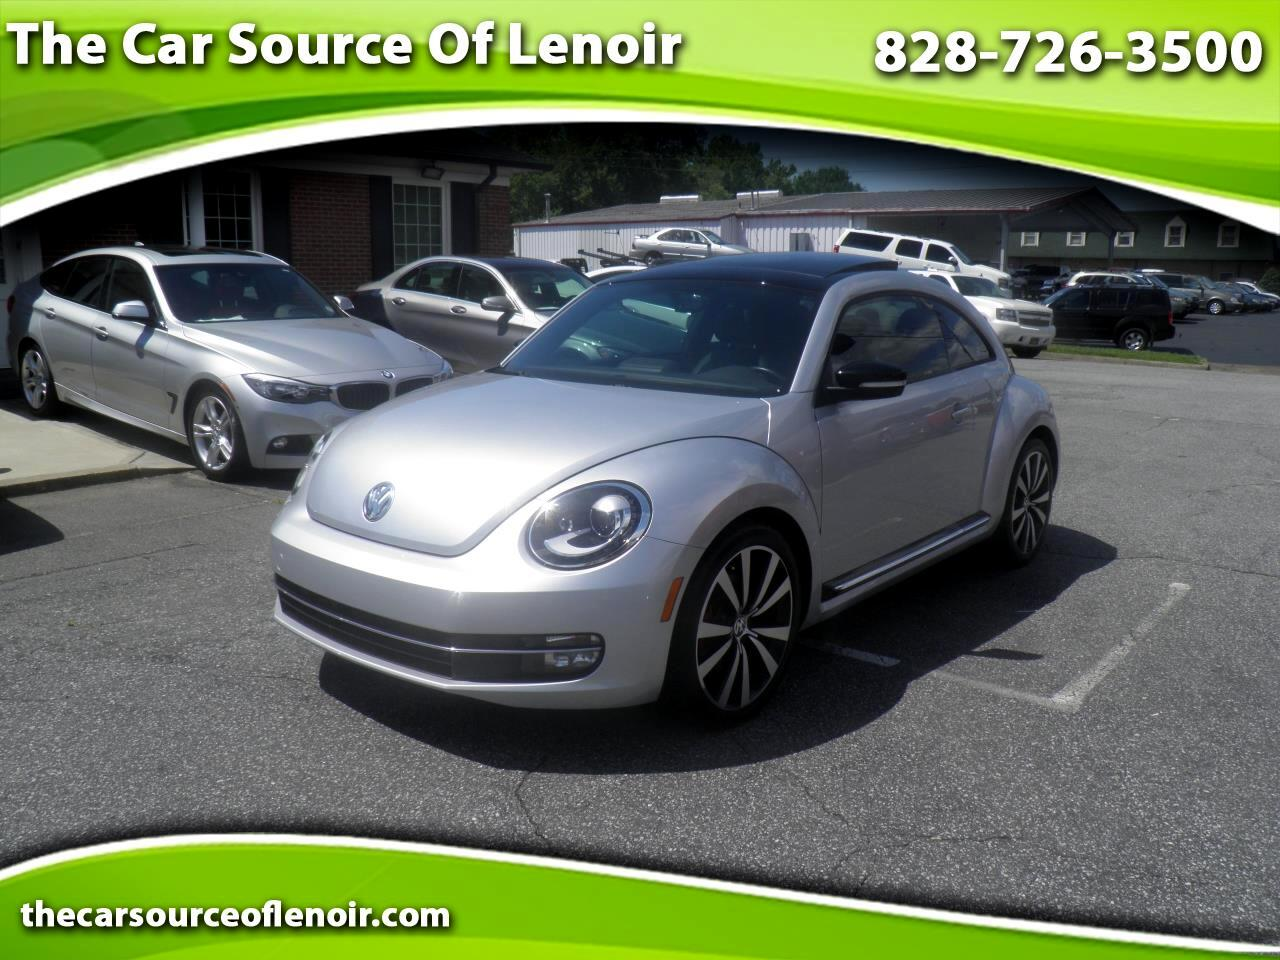 2012 Volkswagen Beetle Beetle Turbo w/ Sunroof, Sound, and Navigation